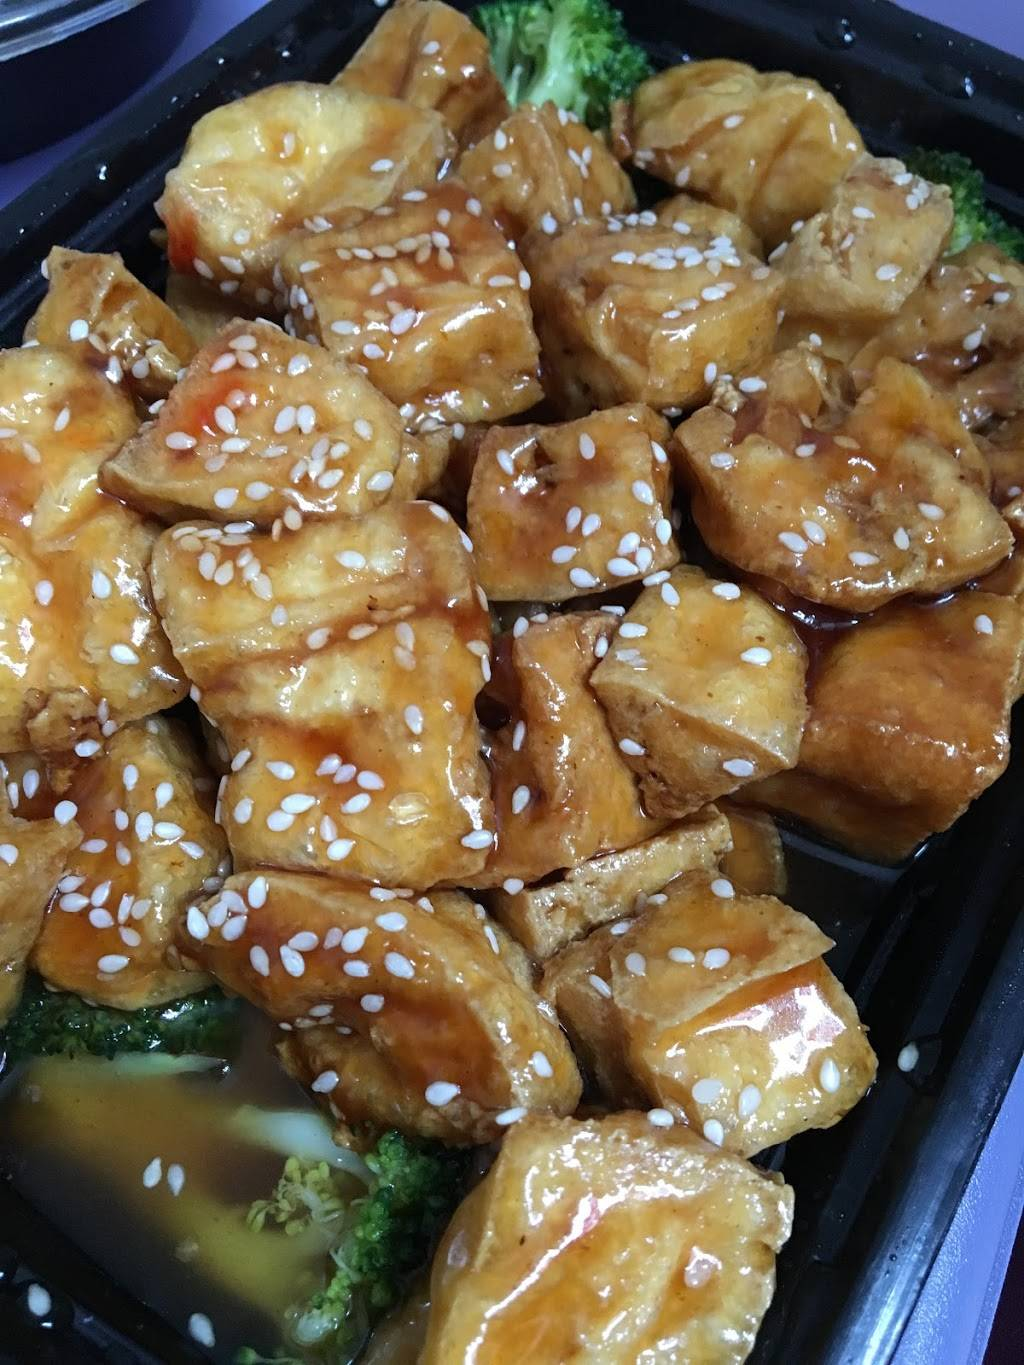 5th Avenue Asian Taste   meal delivery   718 5th Ave, Brooklyn, NY 11215, USA   7187885878 OR +1 718-788-5878